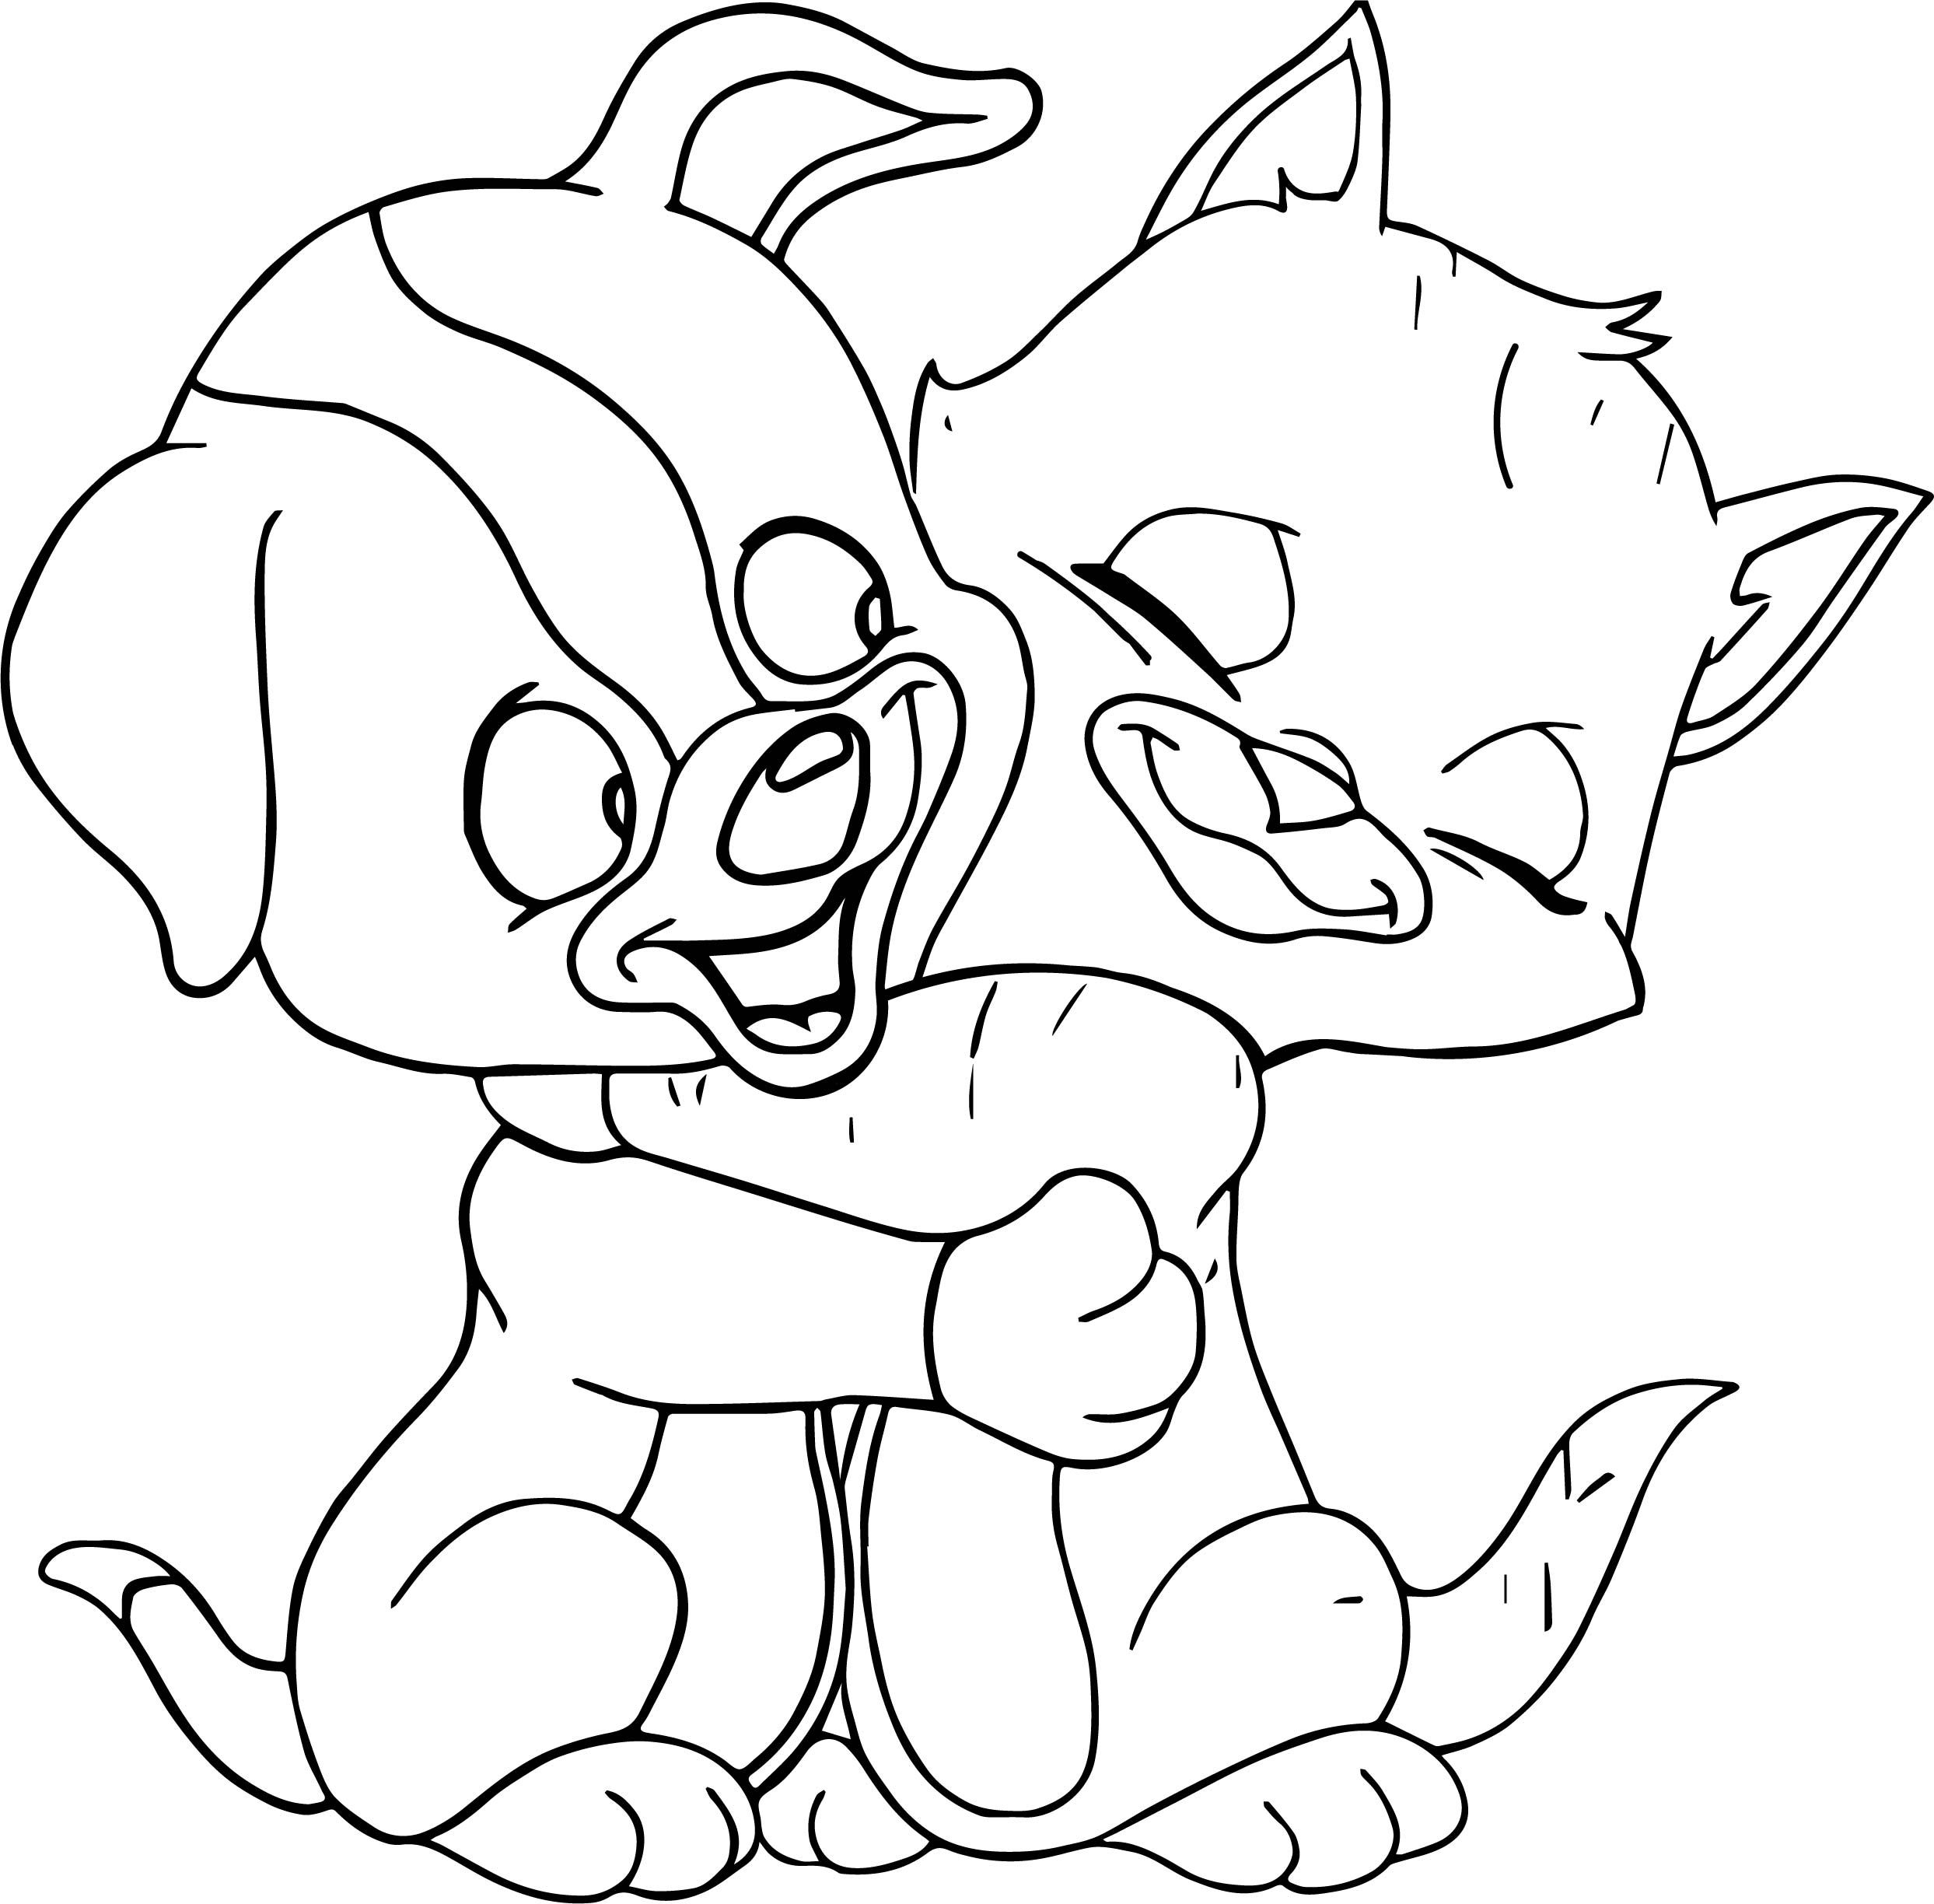 Cat Dog Hug Coloring Page Puppy Coloring Pages Cartoon Coloring